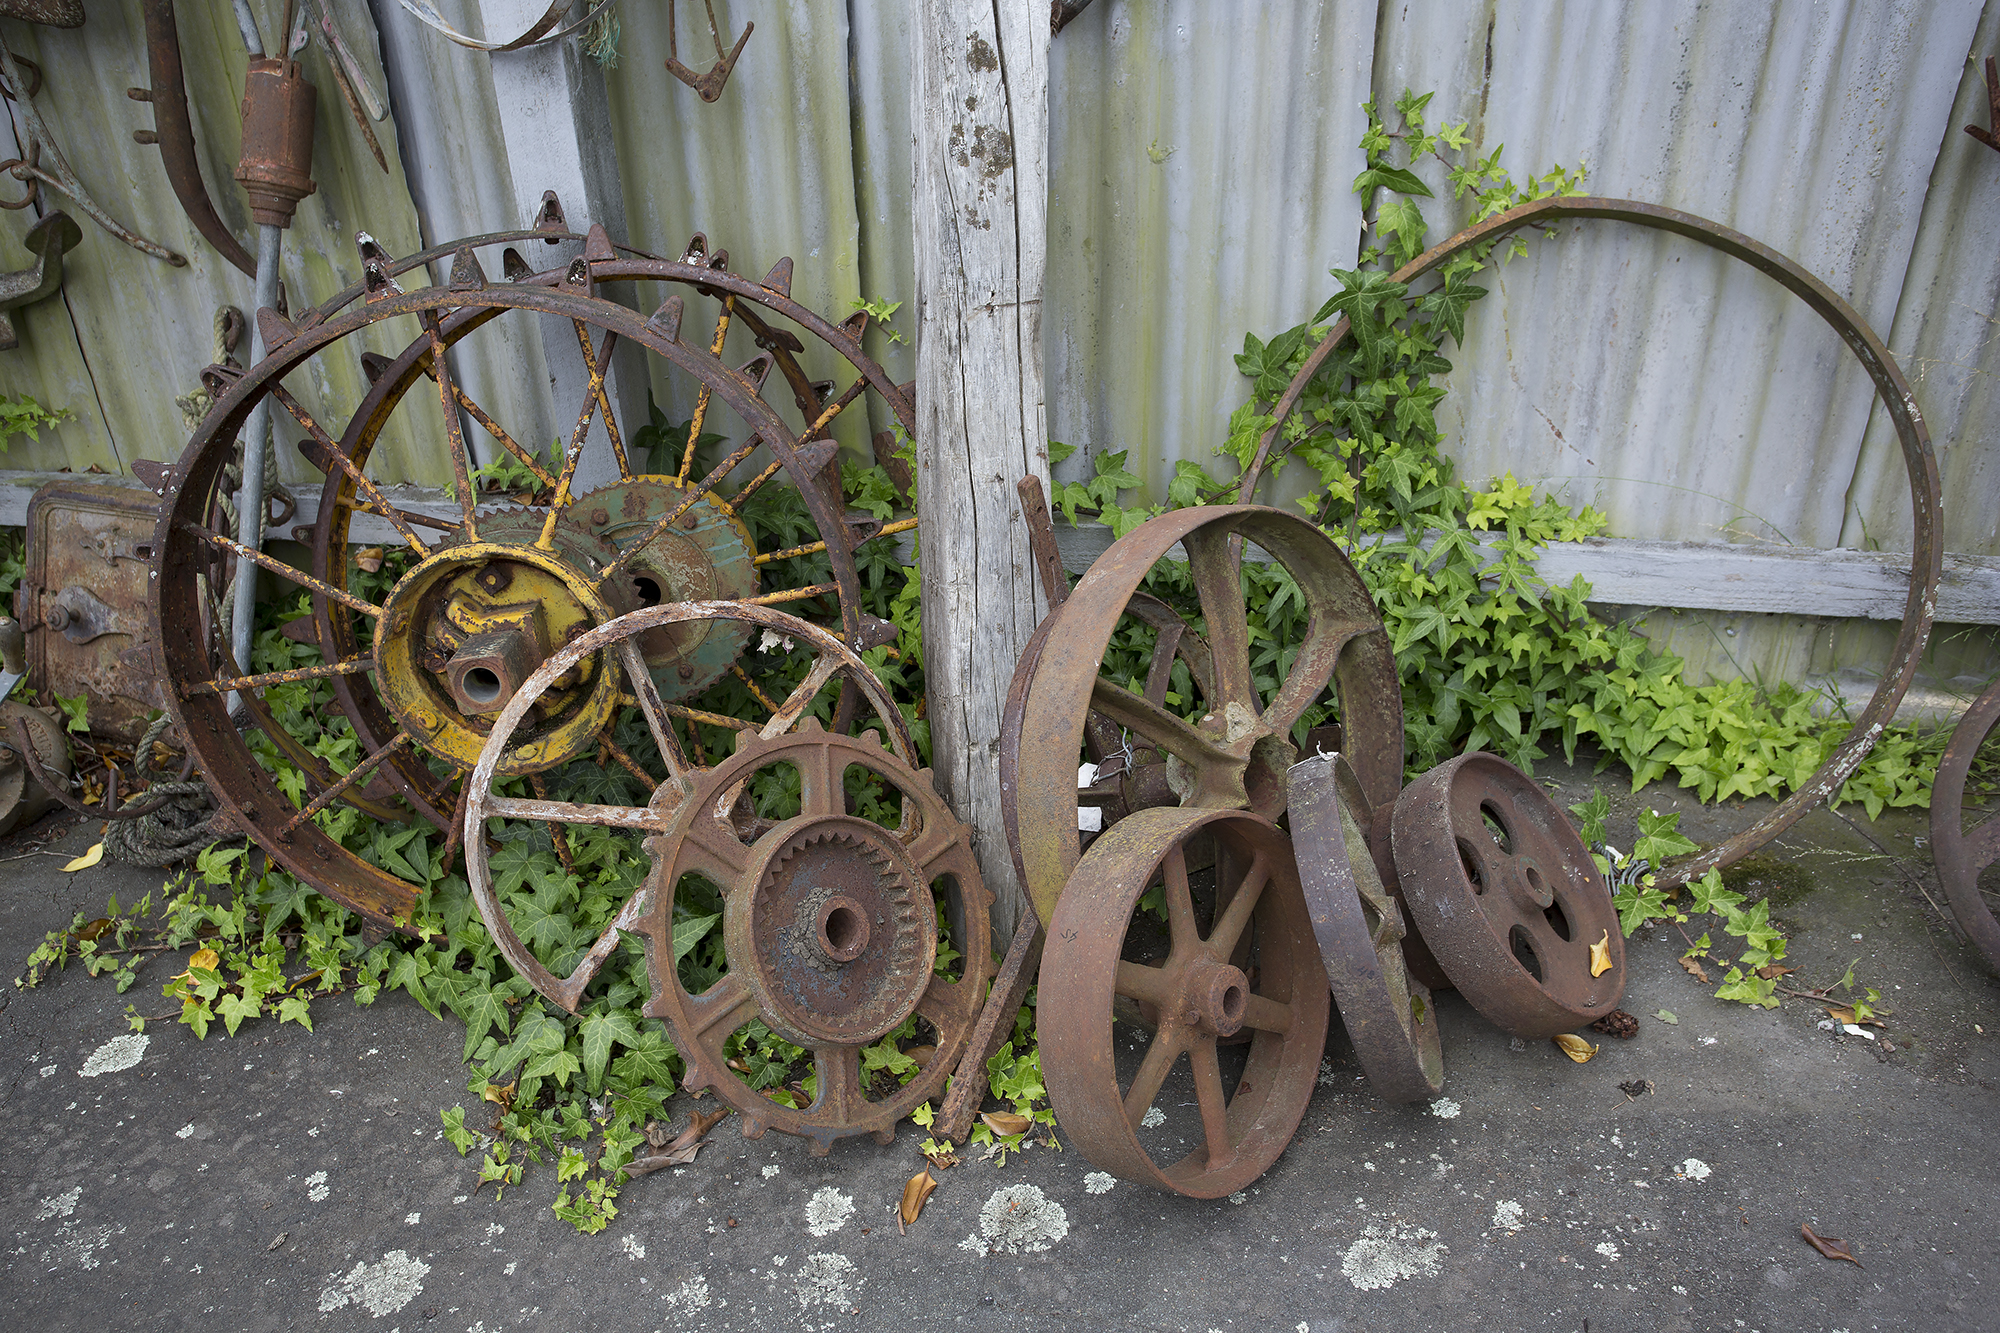 All that remains are the wheels covered in ivy. Where did the vehicles that were attach to them drive? who drove them? so many questions will remain unanswered, a great place to spur the imagination.